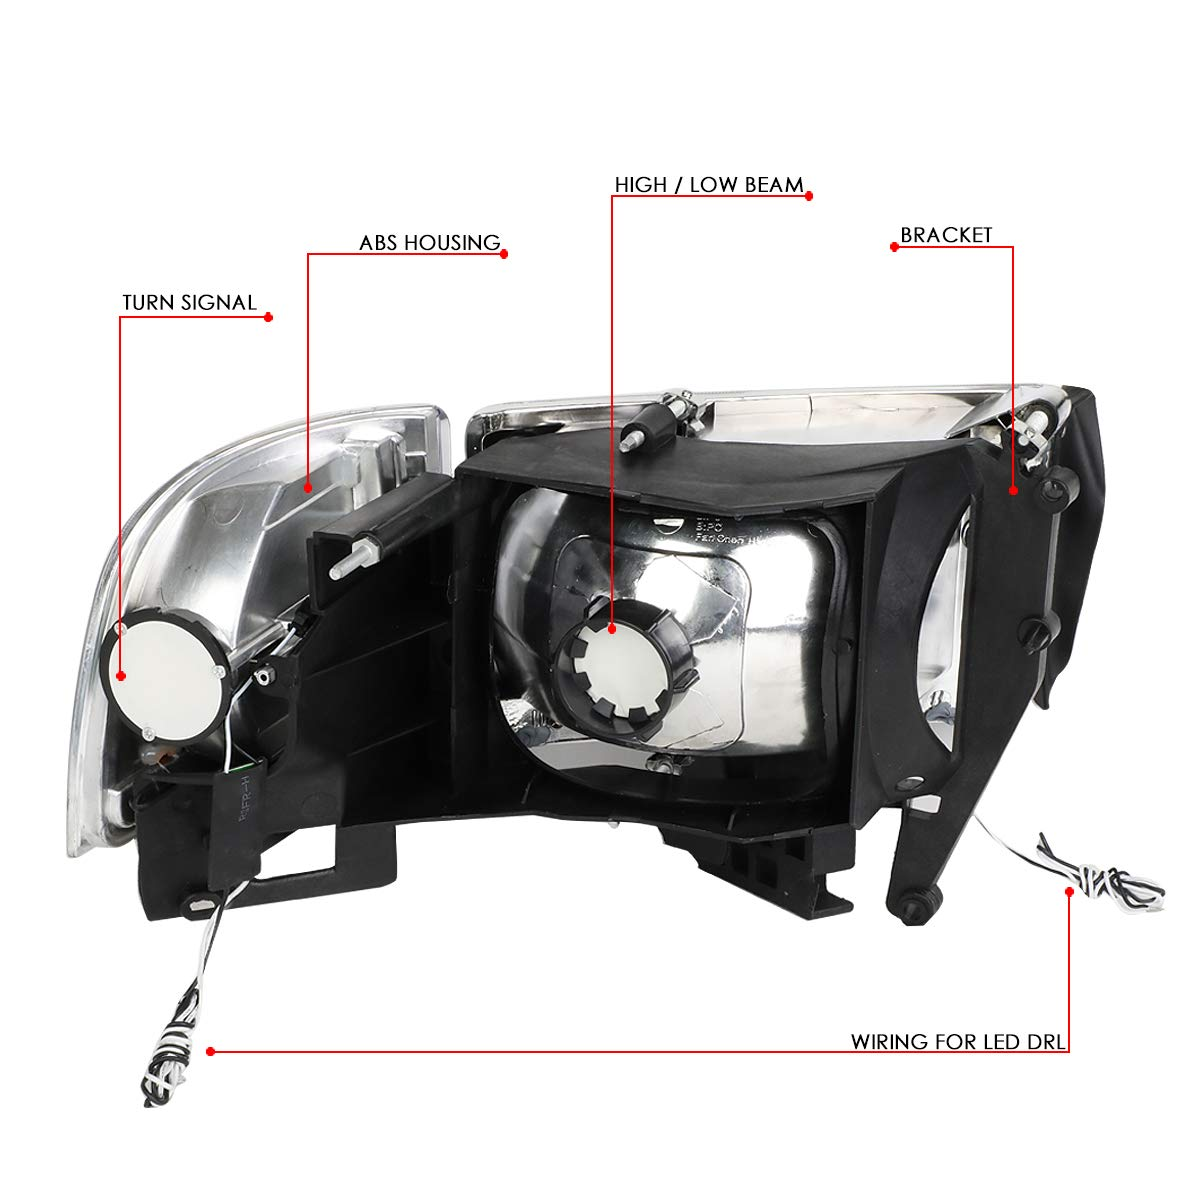 6 inch -Chrome 2007 Gmc ENVOY WO AIR CURTAIN Door mount spotlight Driver side WITH install kit LED